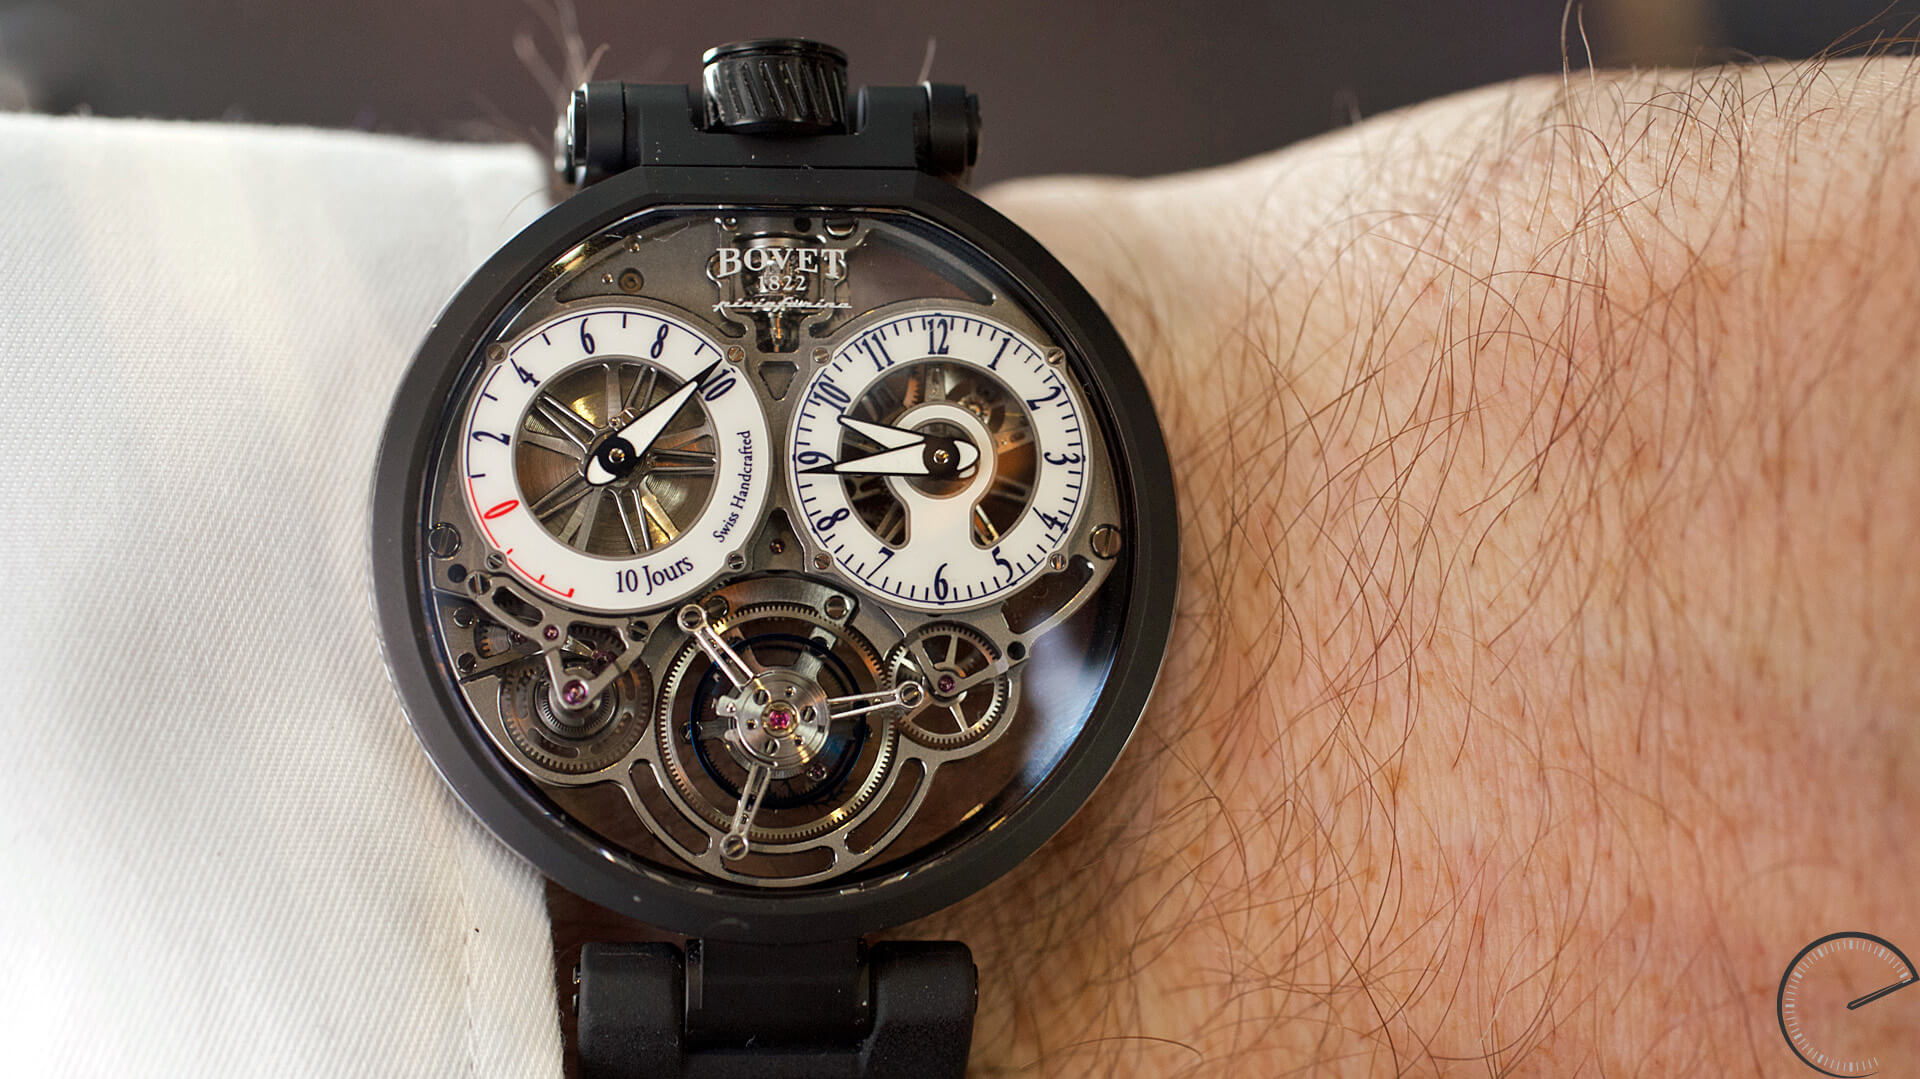 Bovet_Flying_Tourbillon_Ottanta_Sei_Wrist2 - ESCAPEMENT magazine - watch reviews by Angus Davies